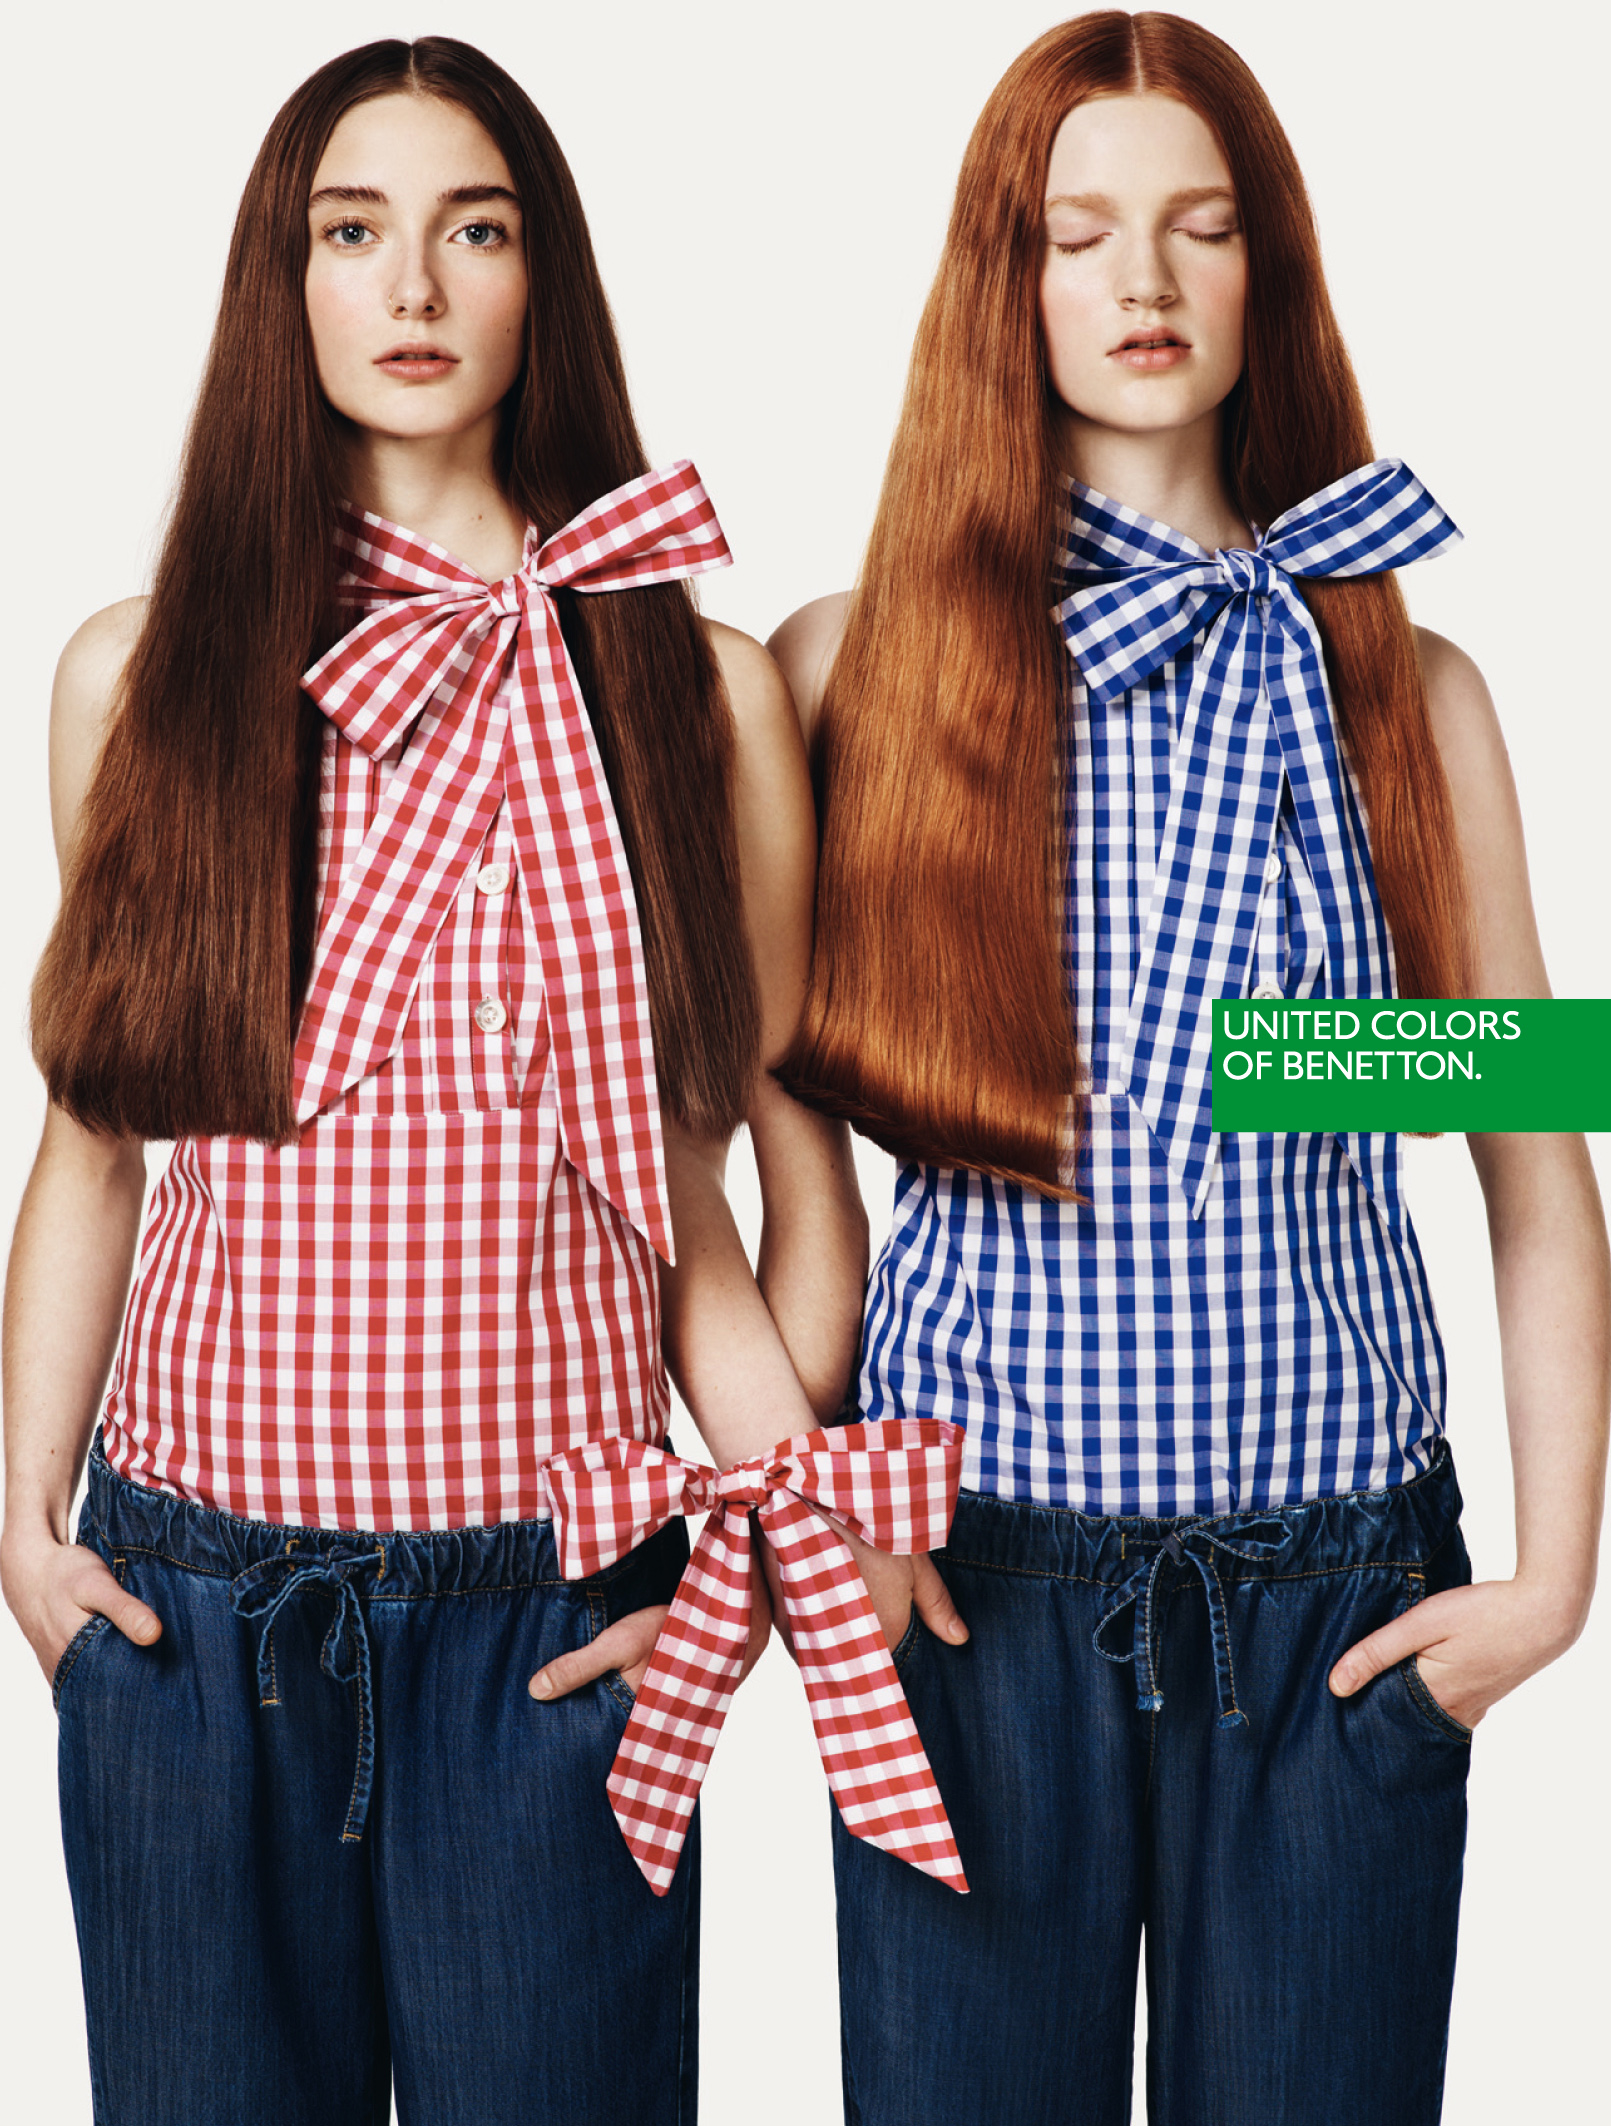 United Colors of Benetton Models United Colors of Benetton